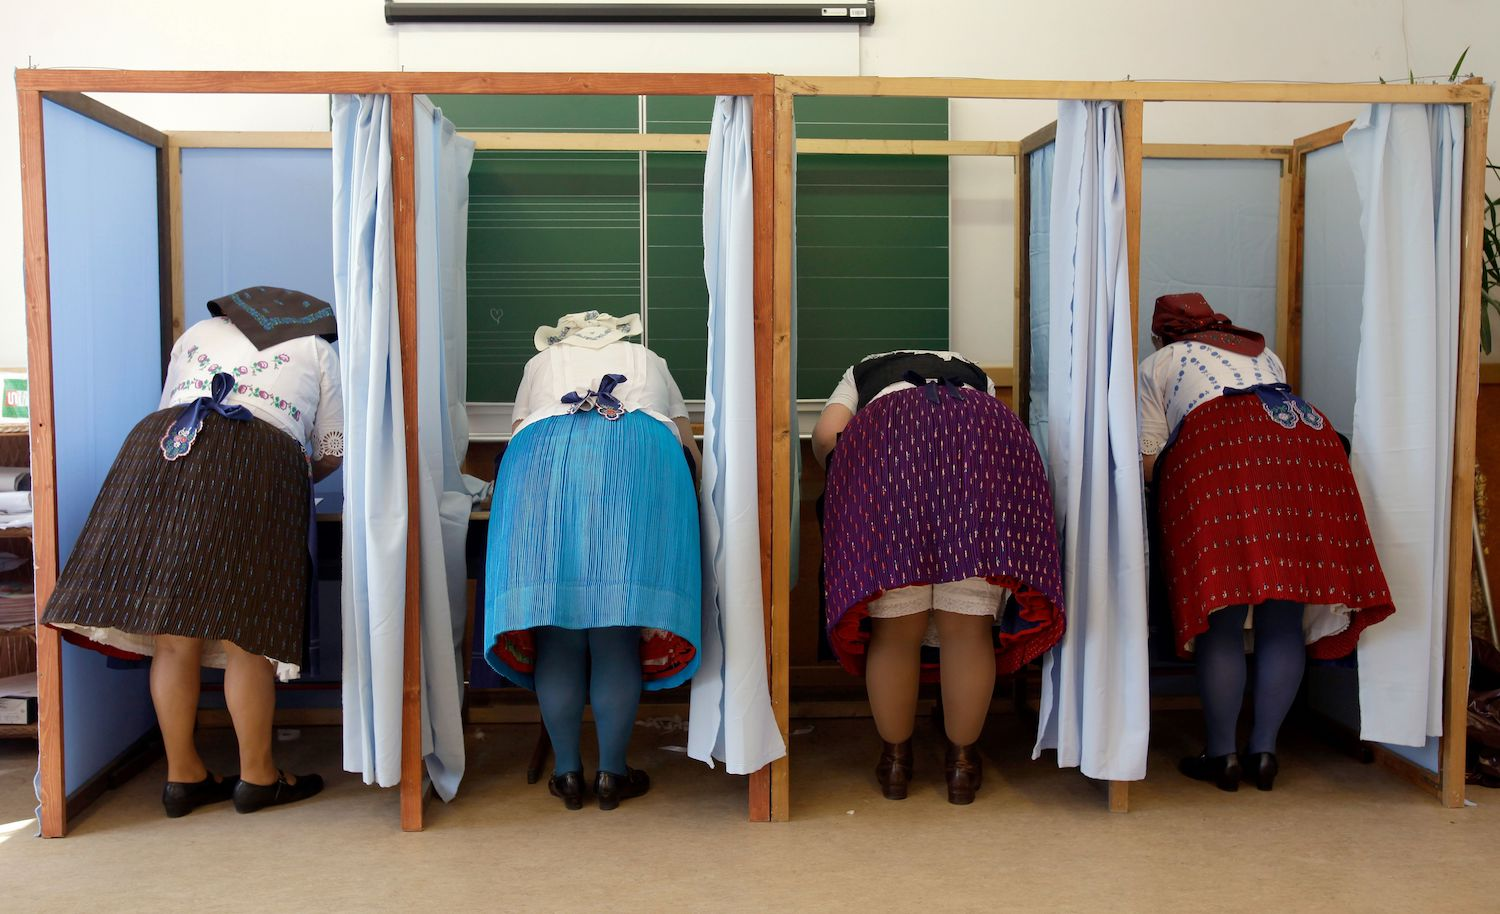 Women dressed in traditional Hungarian outfits prepare their votes in a polling station in a school in Veresegyhaz, some 30kms east of Budapest, on Apr. 8, during the general election.  Hungary votes in parliamentary elections on April 8, 2018 that will decide whether nationalist Prime Minister Viktor Orban wins an expected third consecutive term. / AFP PHOTO / PETER KOHALMI        (Photo credit should read PETER KOHALMI/AFP/Getty Images)